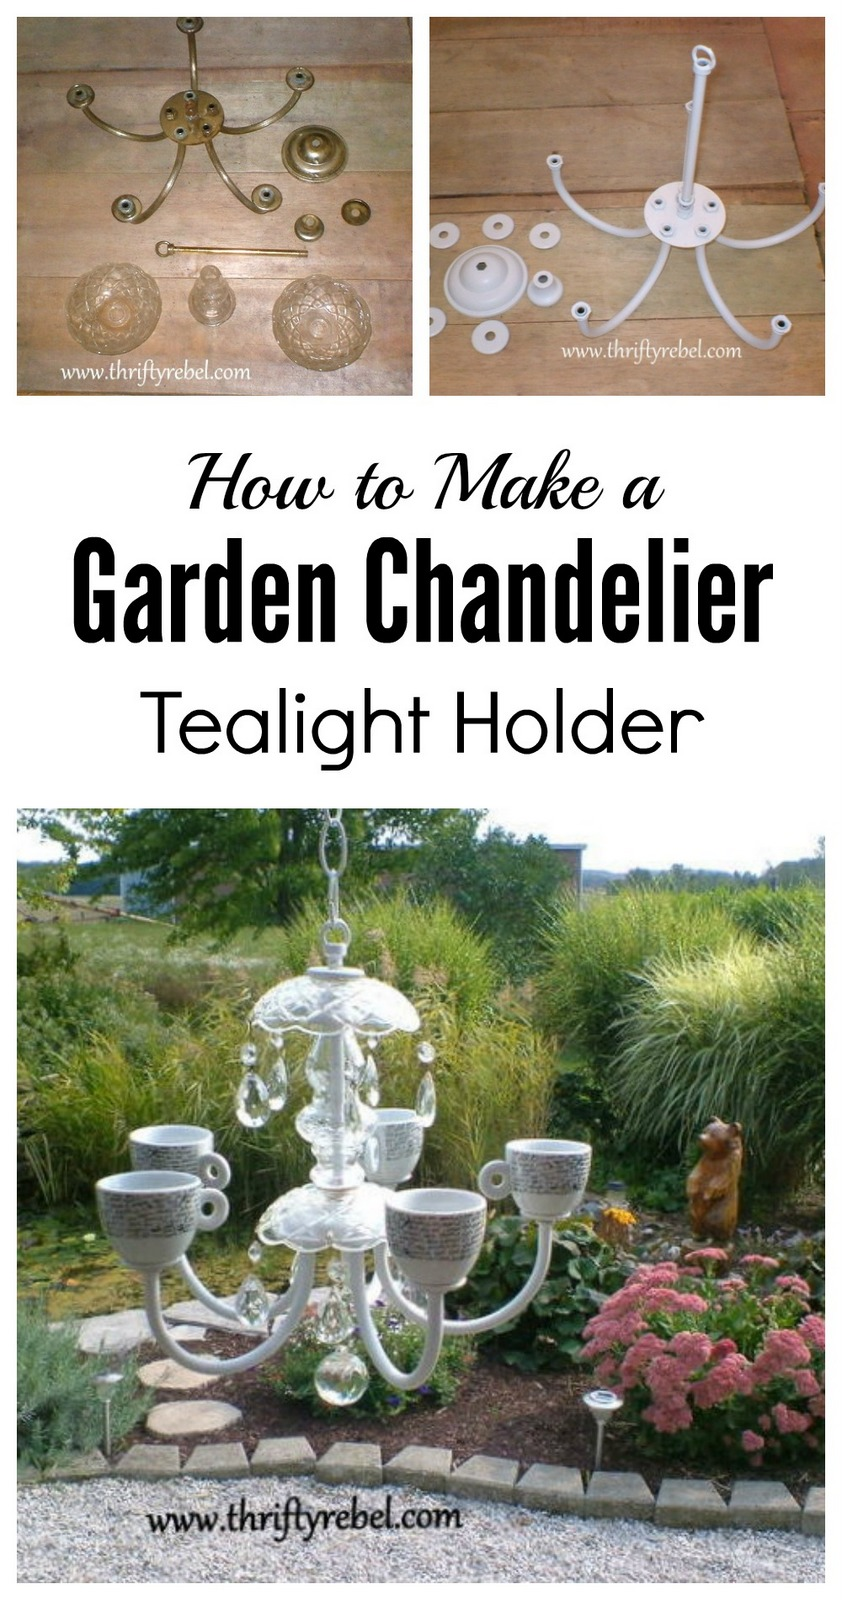 How to make a garden chandelier tealight holder